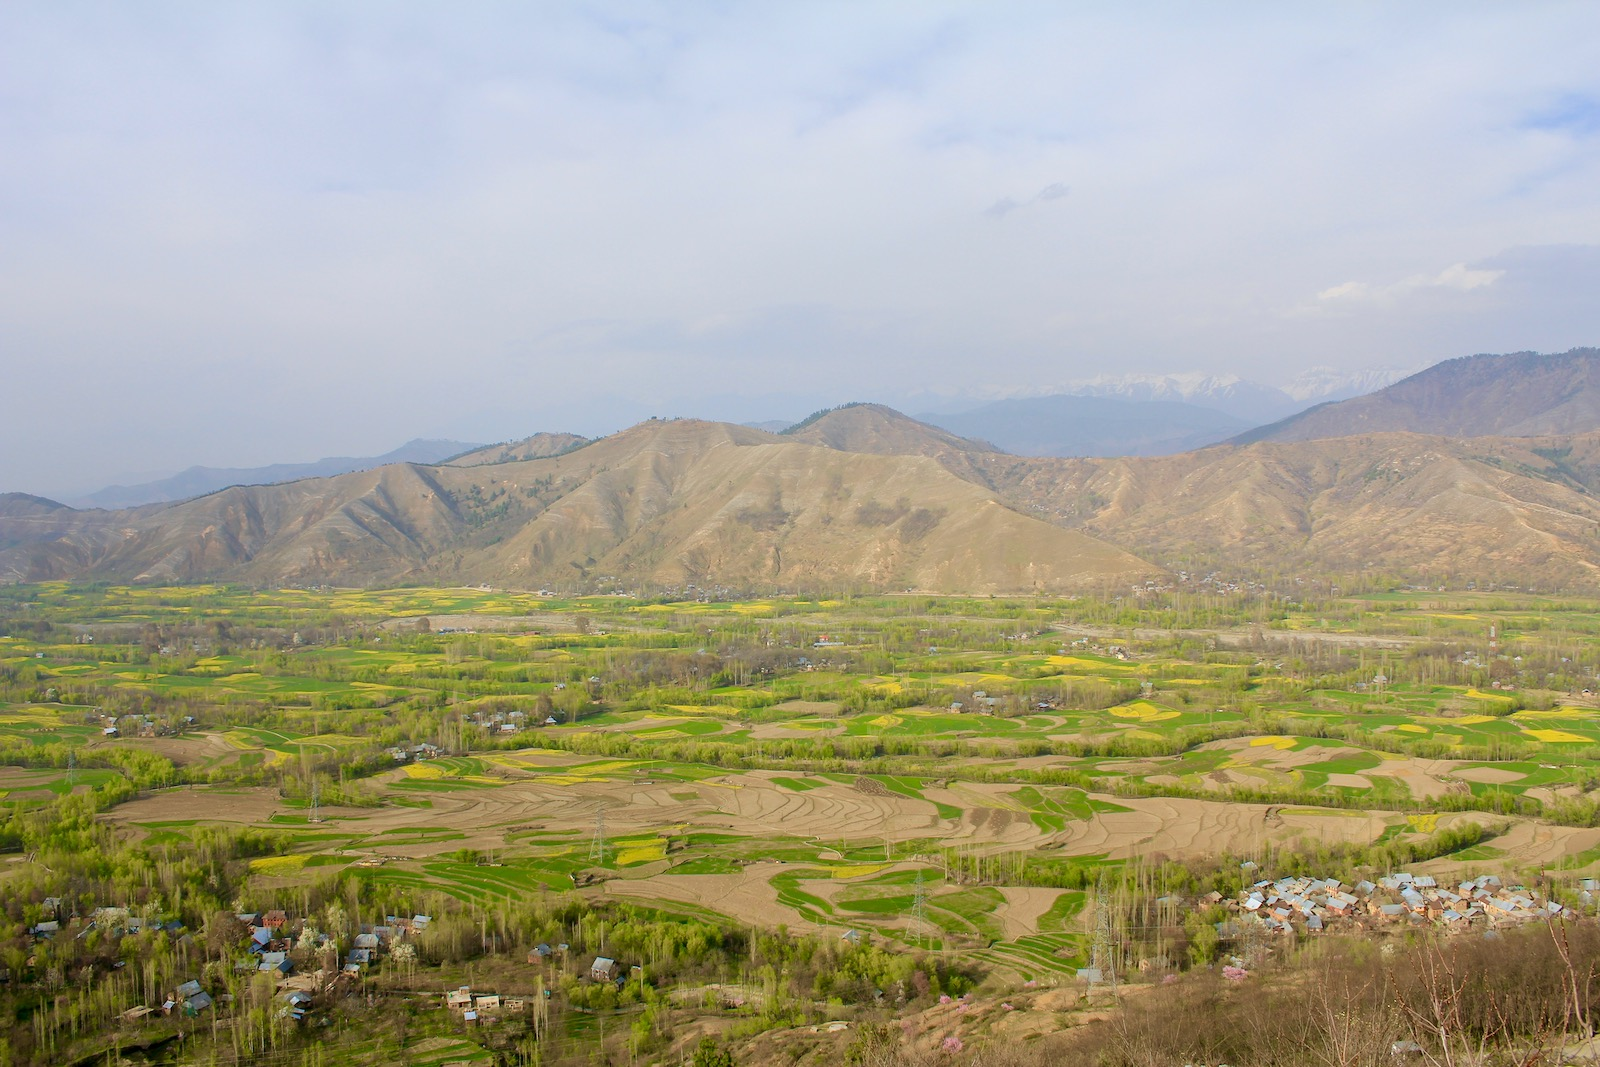 First view into the Kashmir Valley in spring after passing through the Banihal tunnel on the national highway